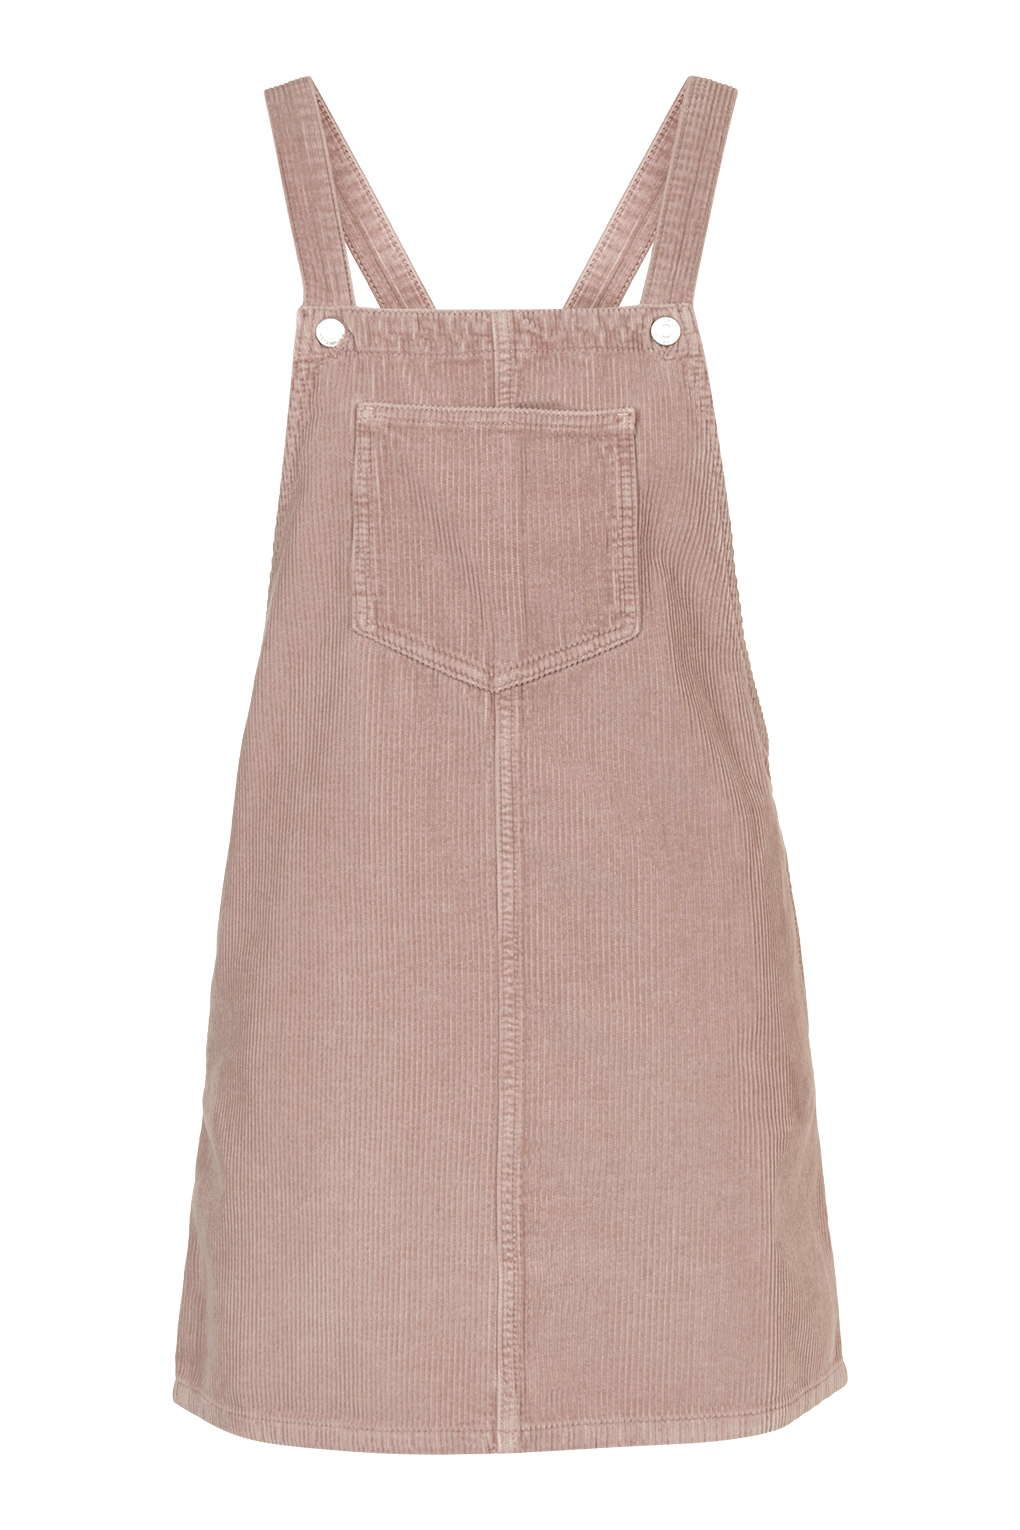 214ad45968e MOTO Pink Cord Pinafore Dress - Trending Now - New In - Topshop ...